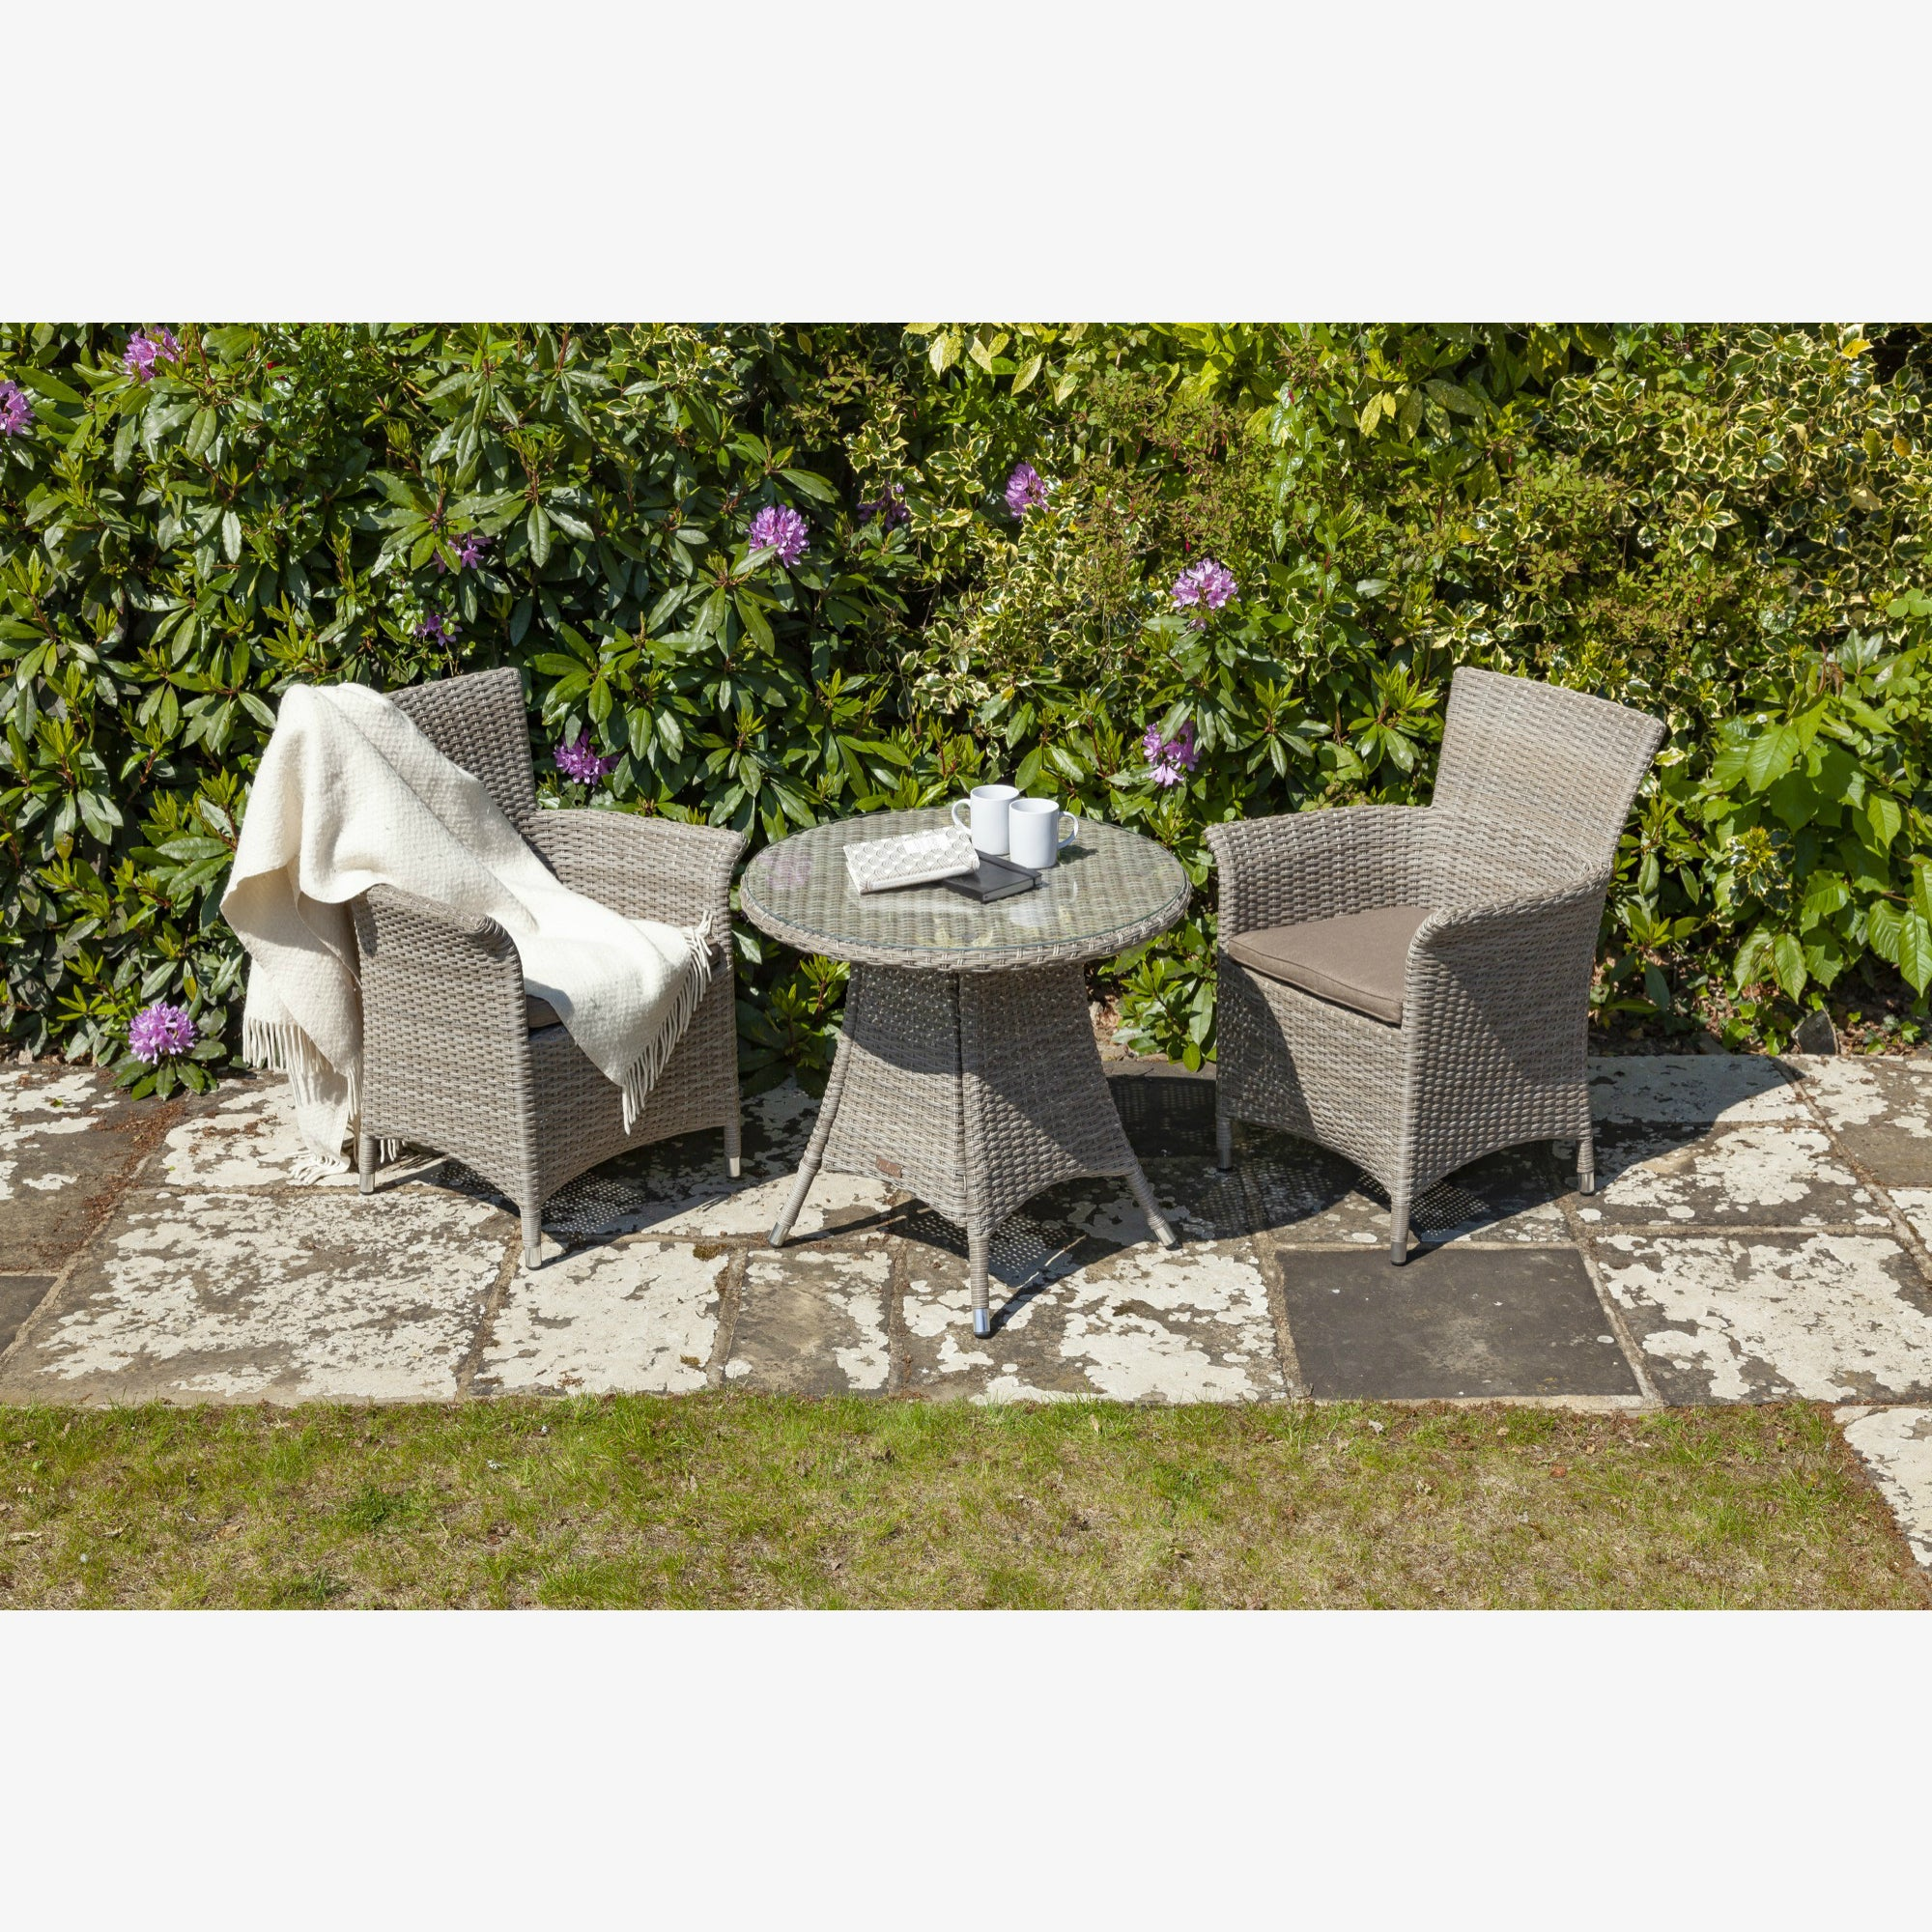 Serica Bistro Table & Chairs Set